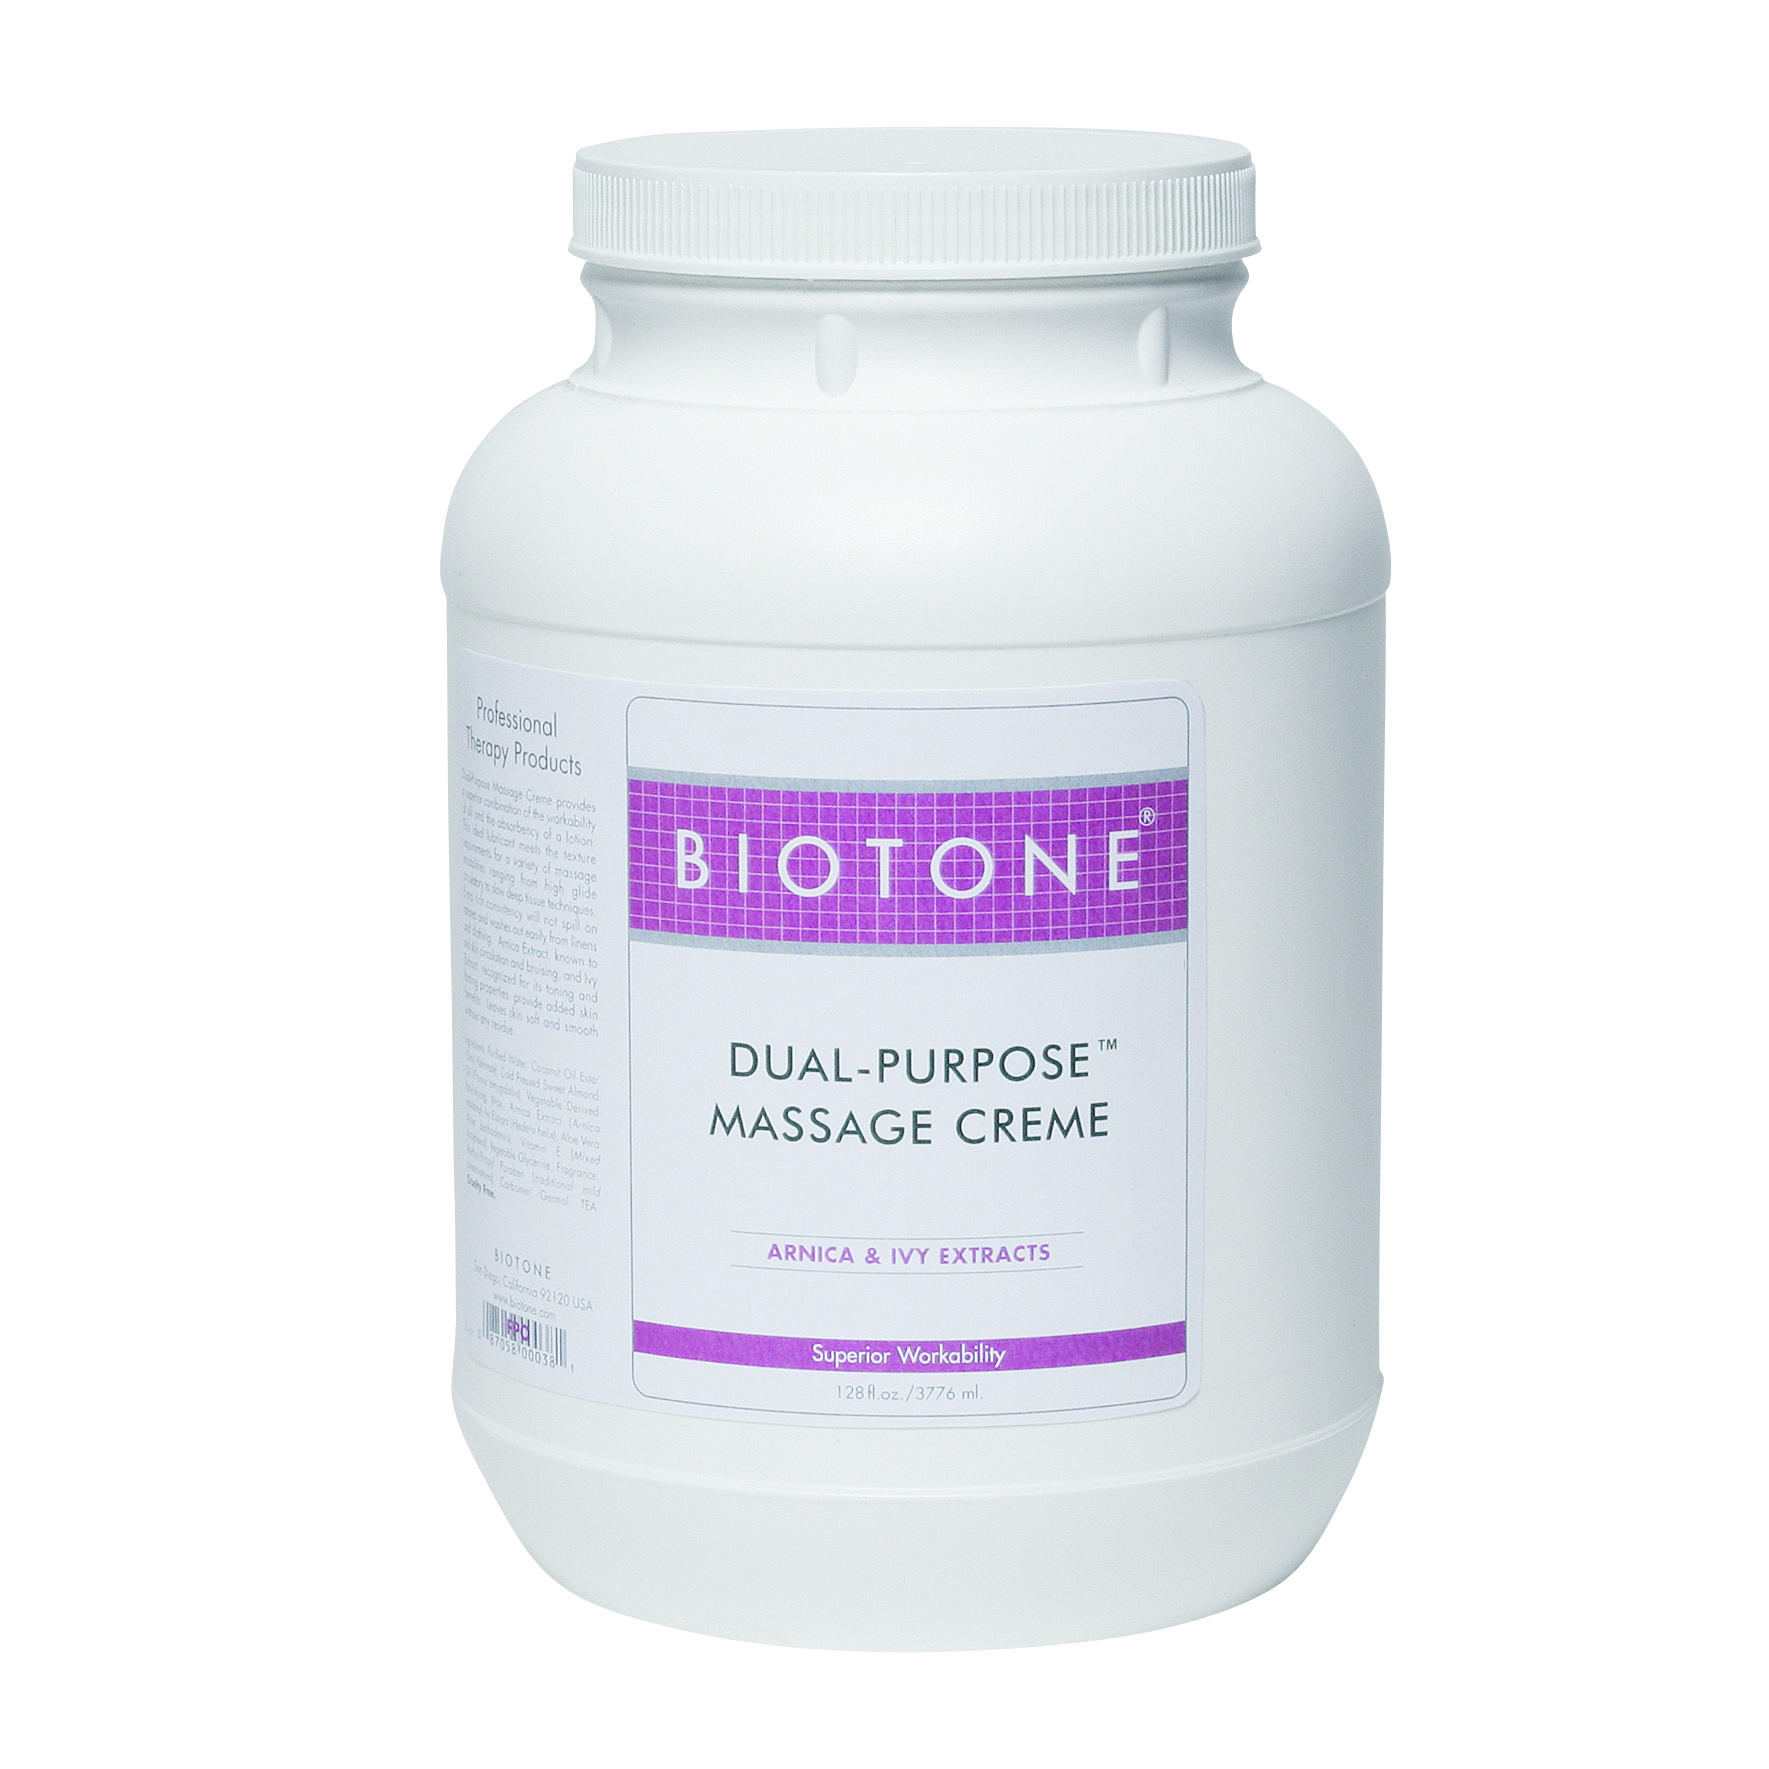 The latest Tweets from BIOTONE (@BIOTONE). Professional Massage and Spa Therapy Products. San Diego, CA.